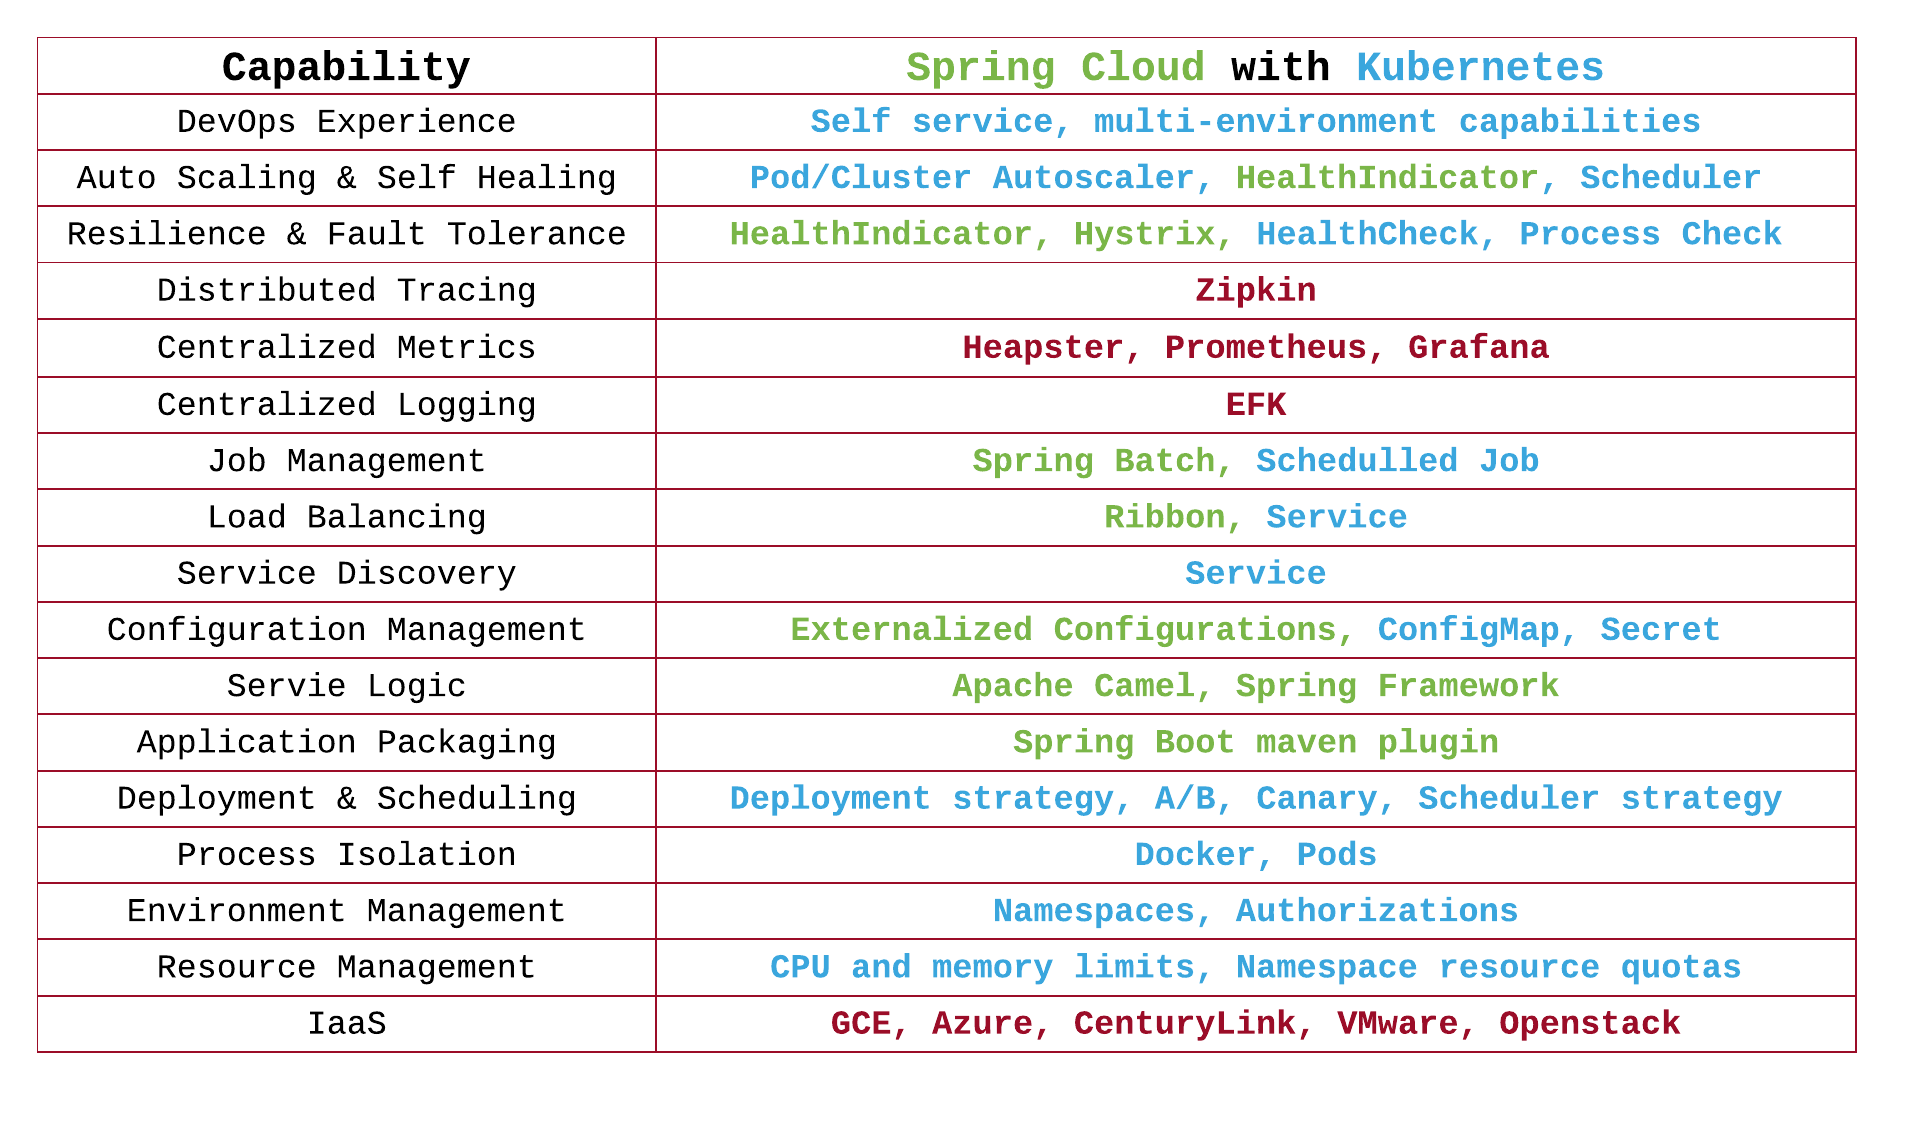 Spring Cloud backed by Kubernetes